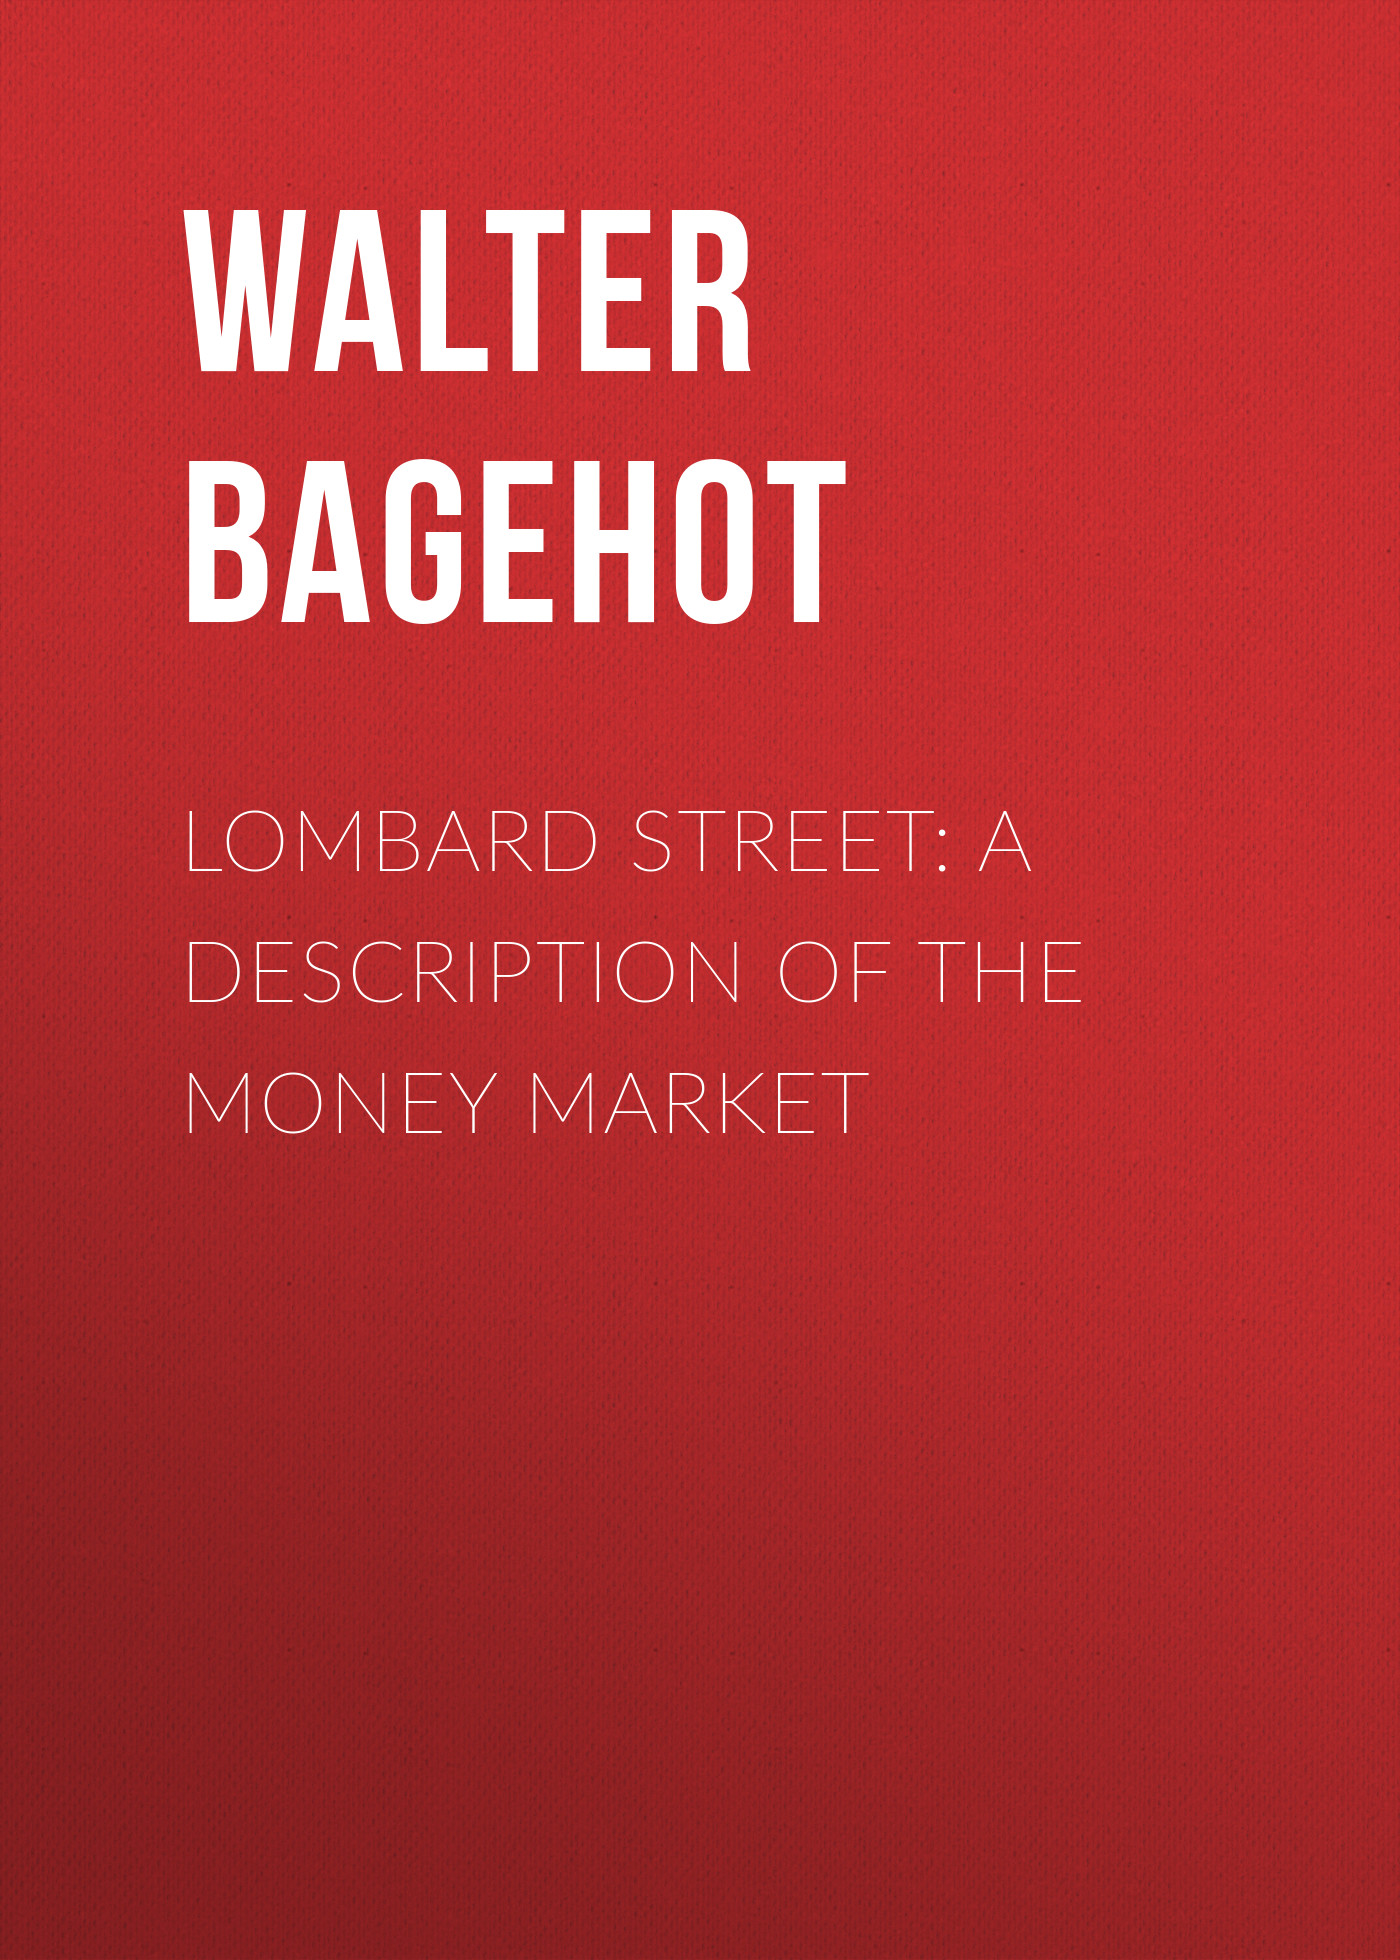 Walter Bagehot Lombard Street: A Description of the Money Market renata lombard thoughts from the heart